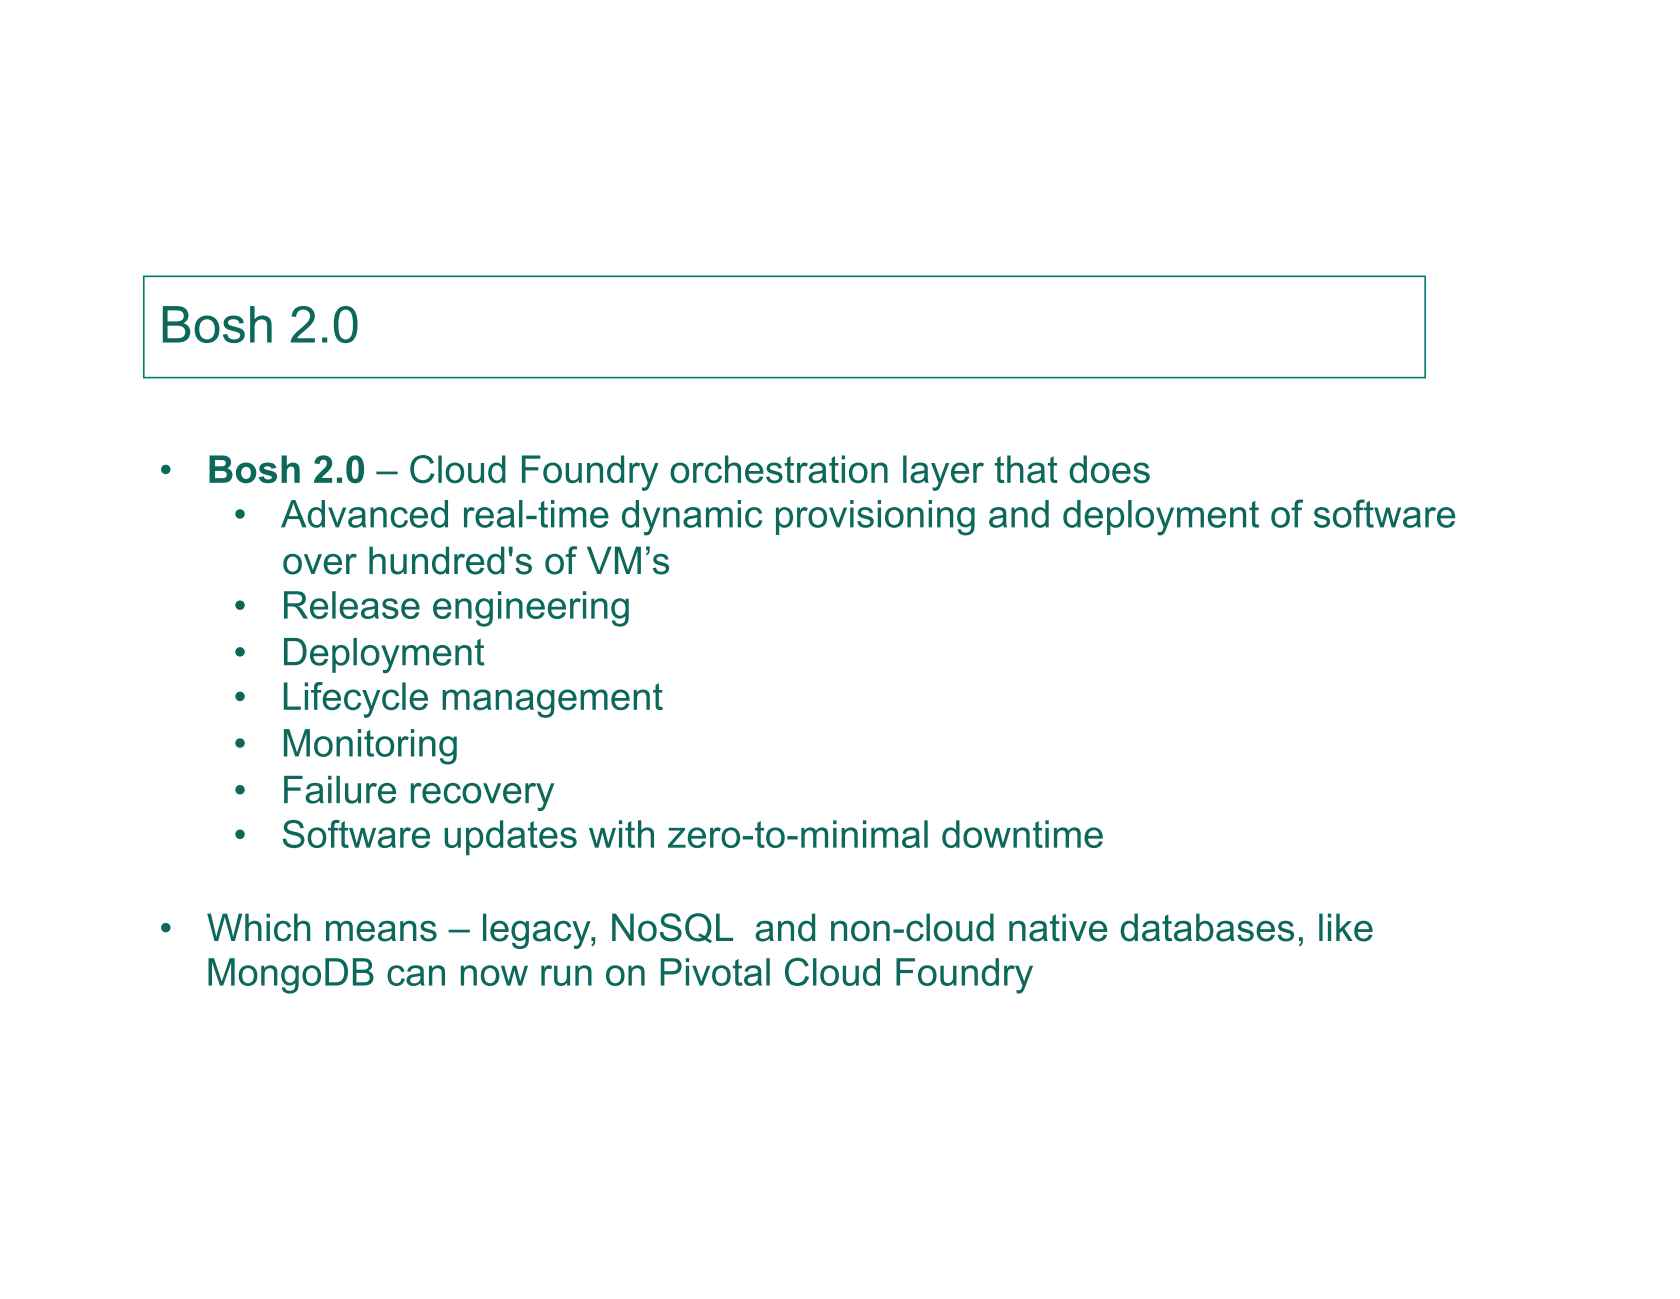 MongoDB-as-a-Service on Pivotal Cloud Foundry